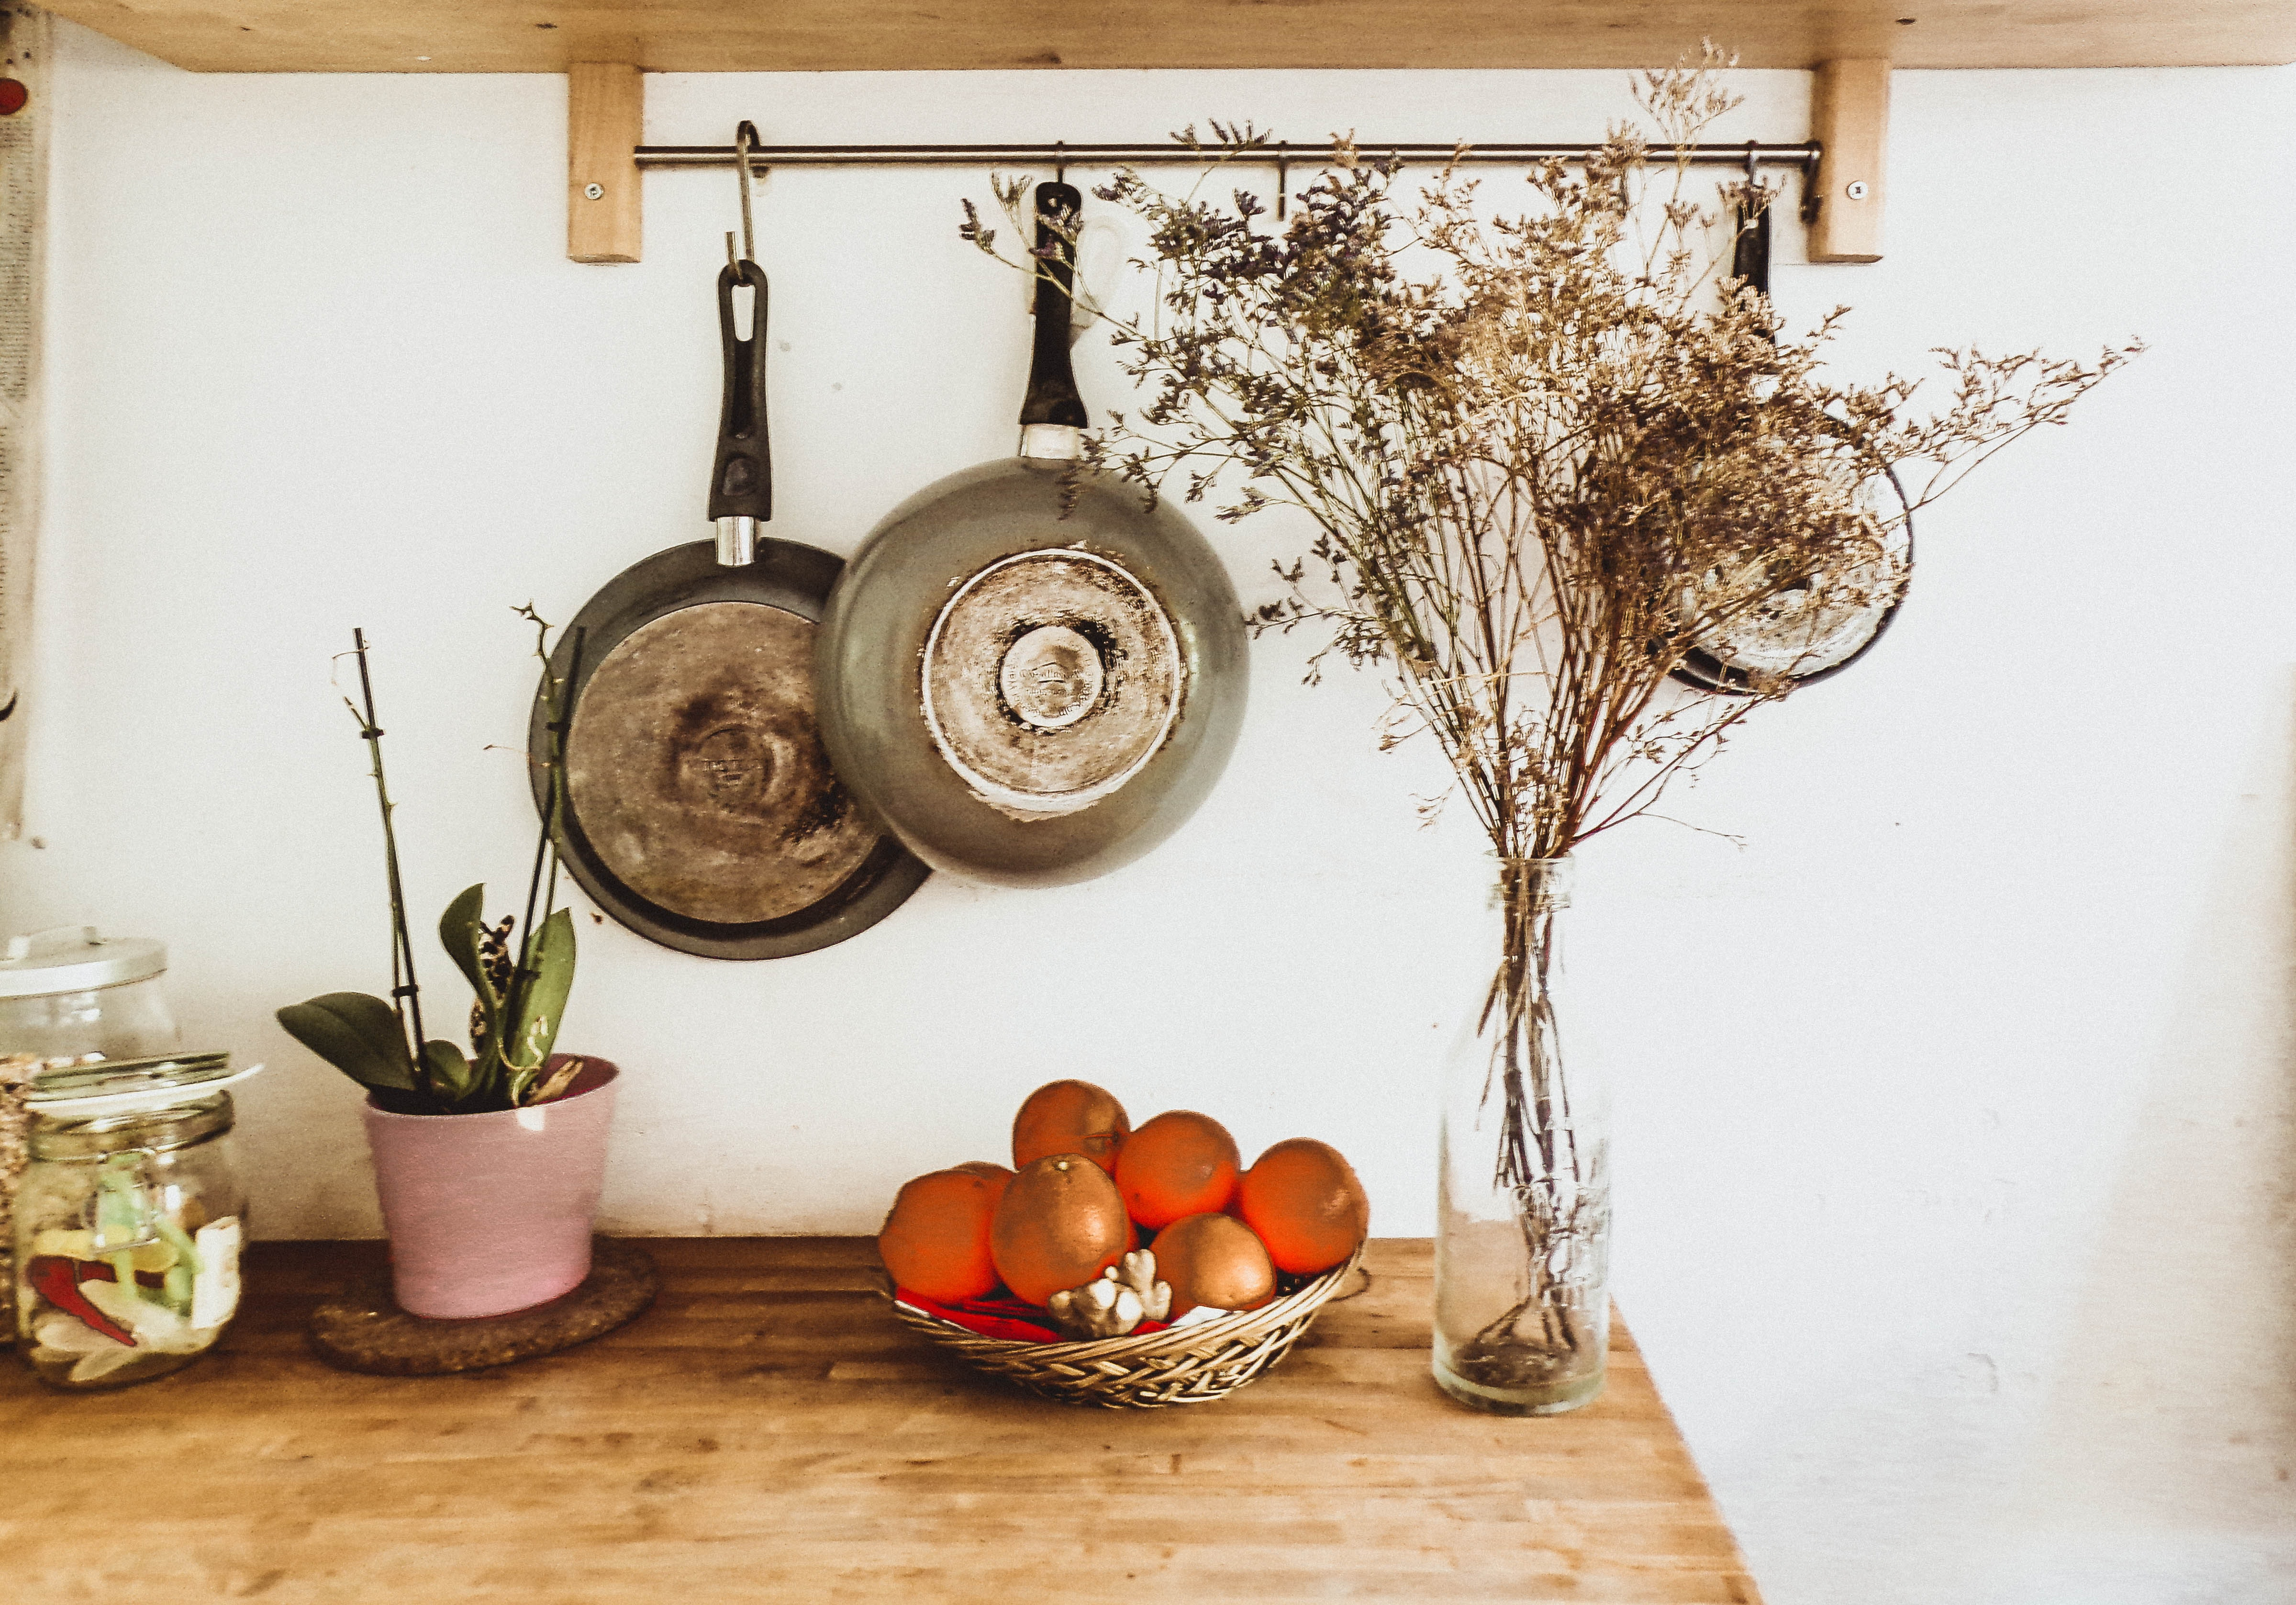 Wall Storage for Pots and Pans